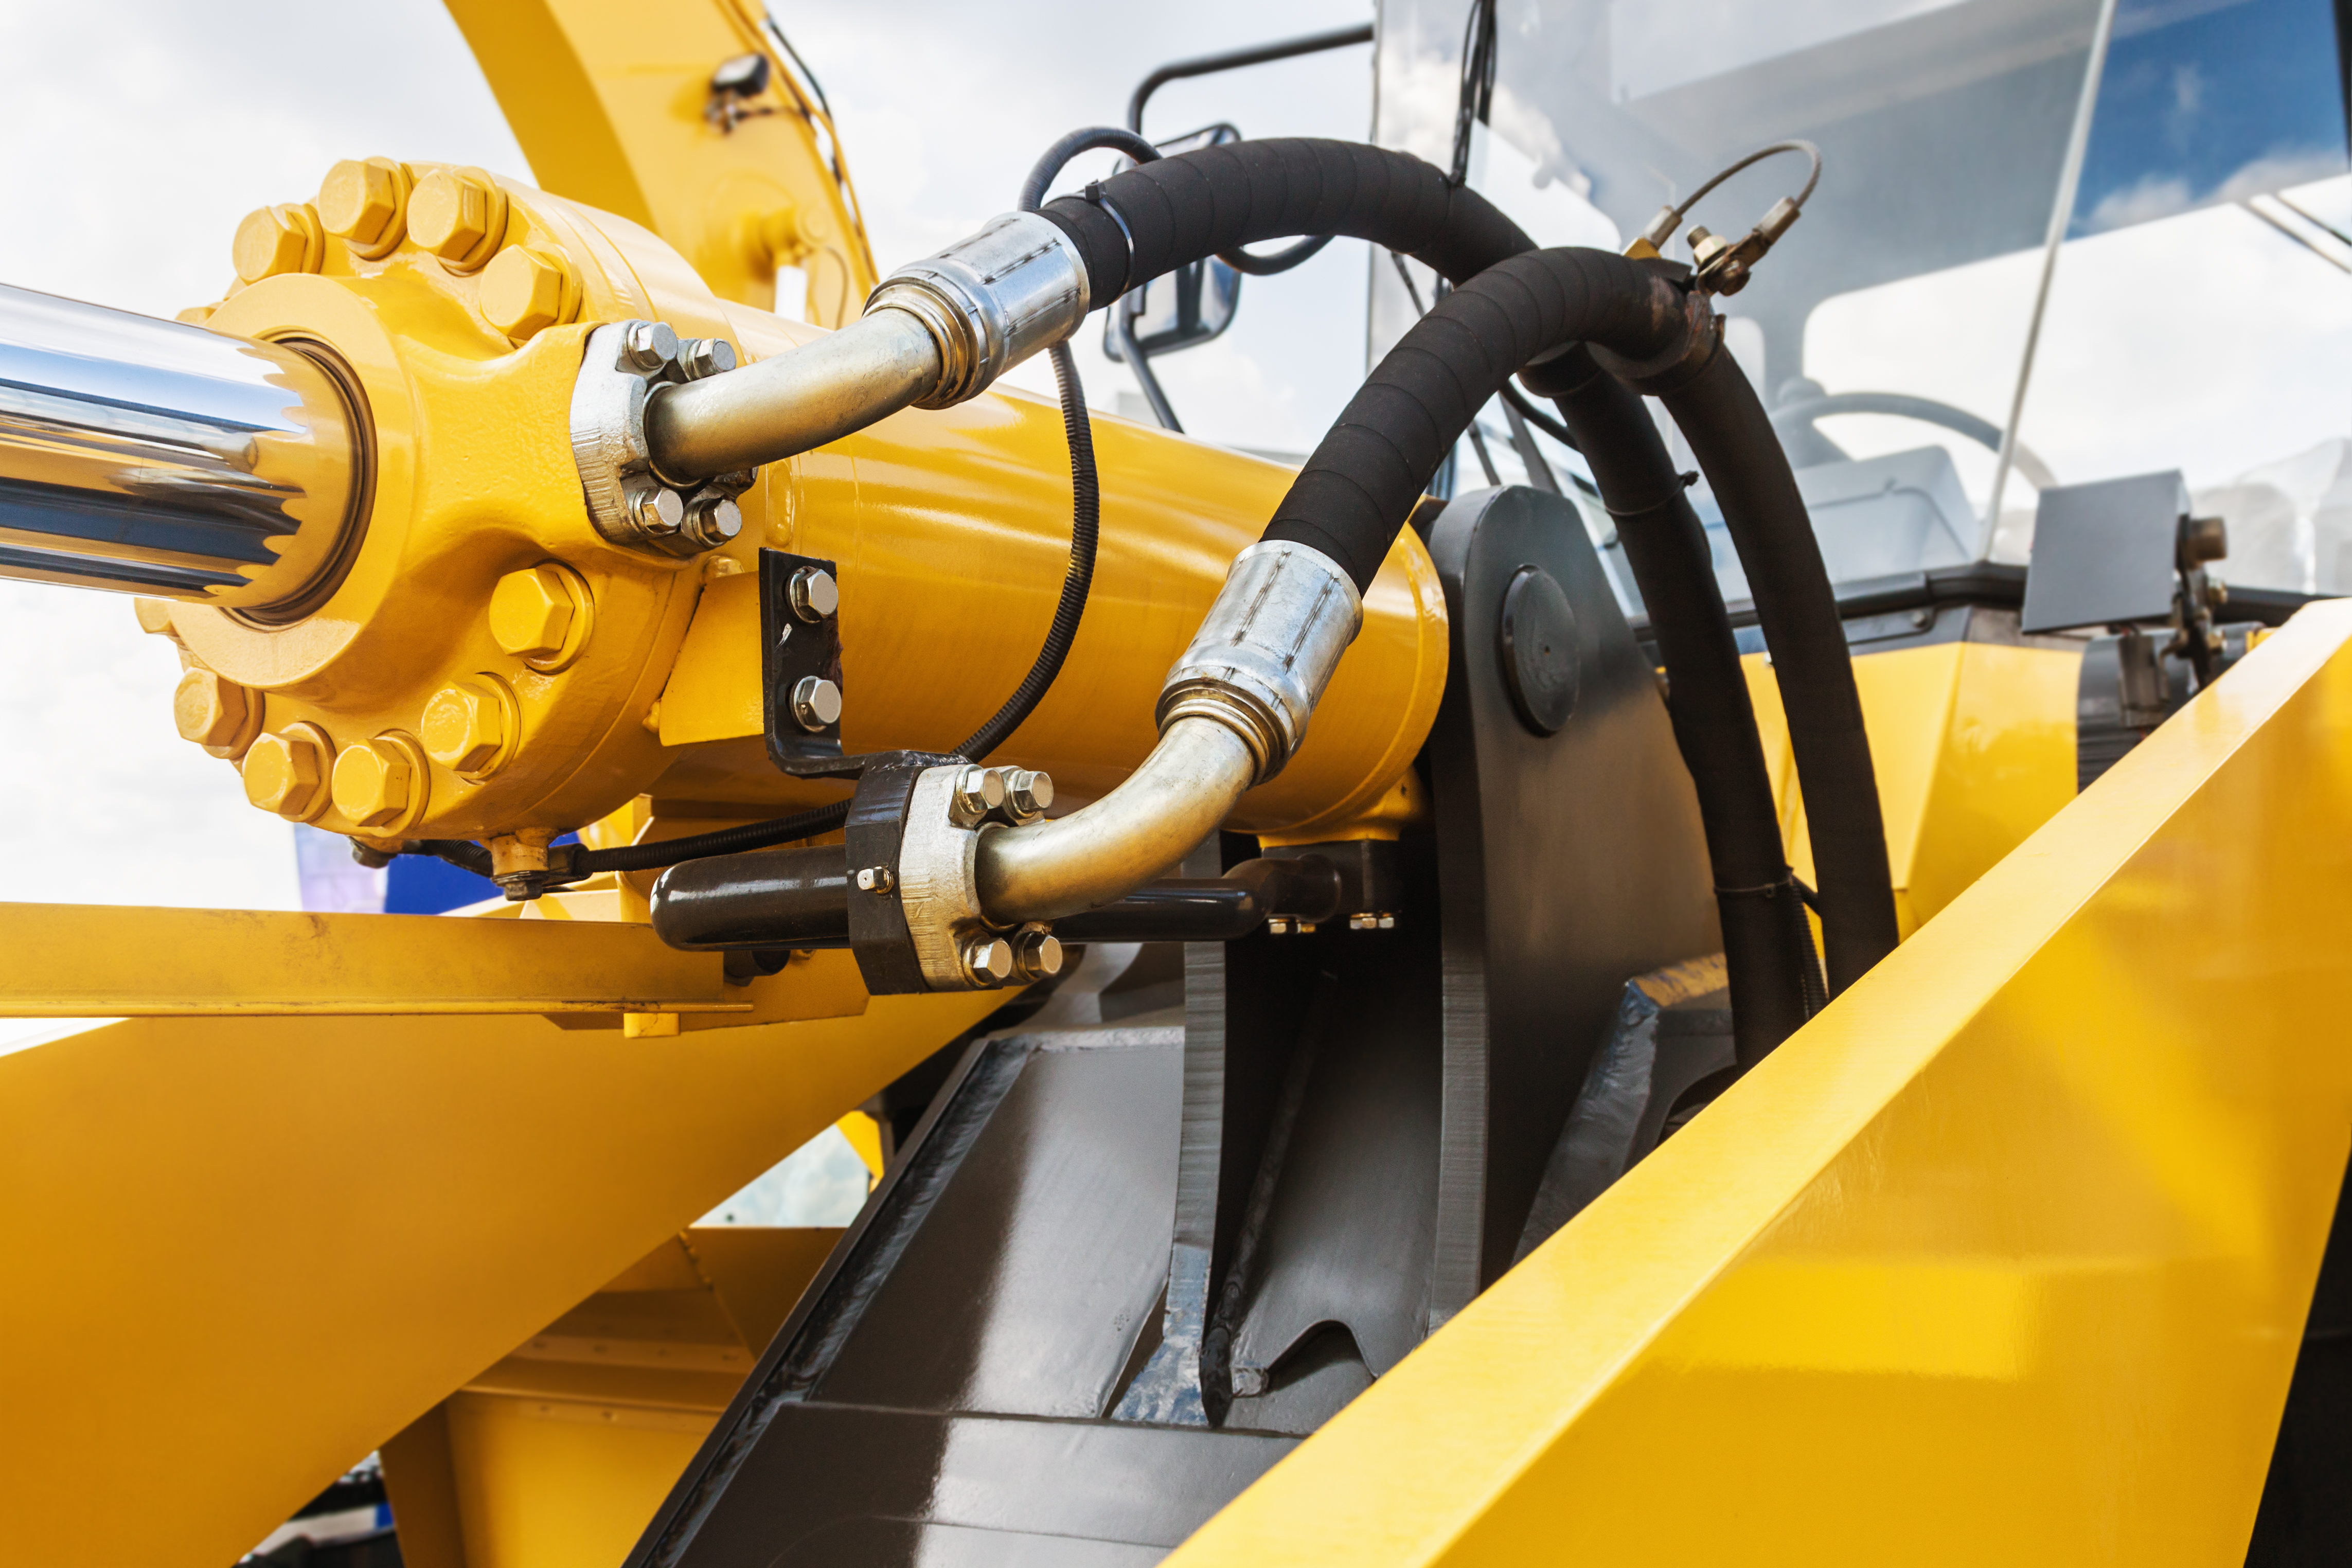 How to Rebuild a Kubota Hydraulic Cylinder | Career Trend